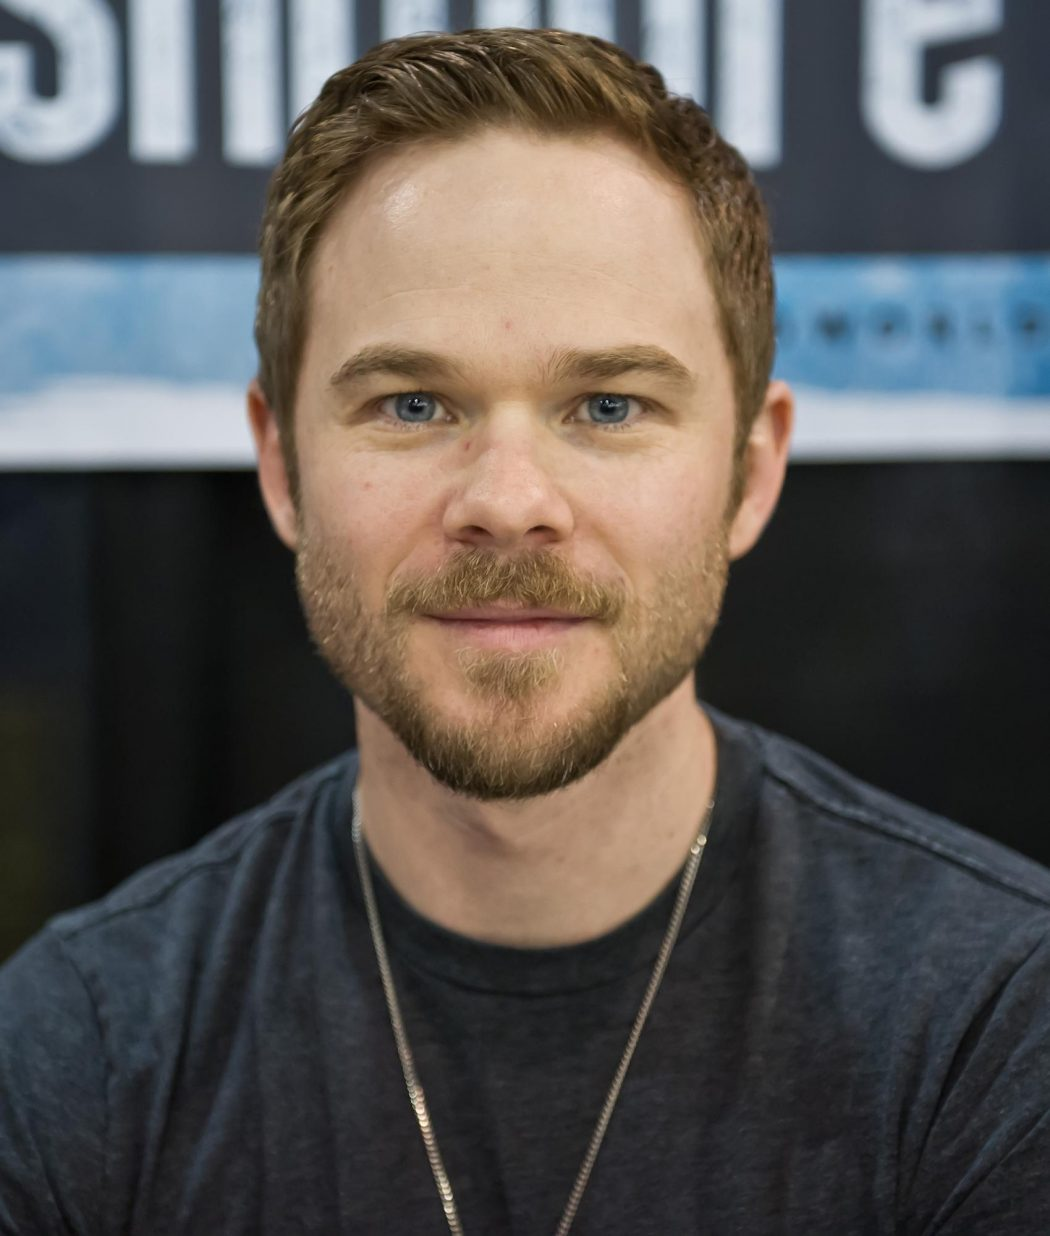 shawn-ashmore-8 5 Celebrities Who Have an Identical Twin